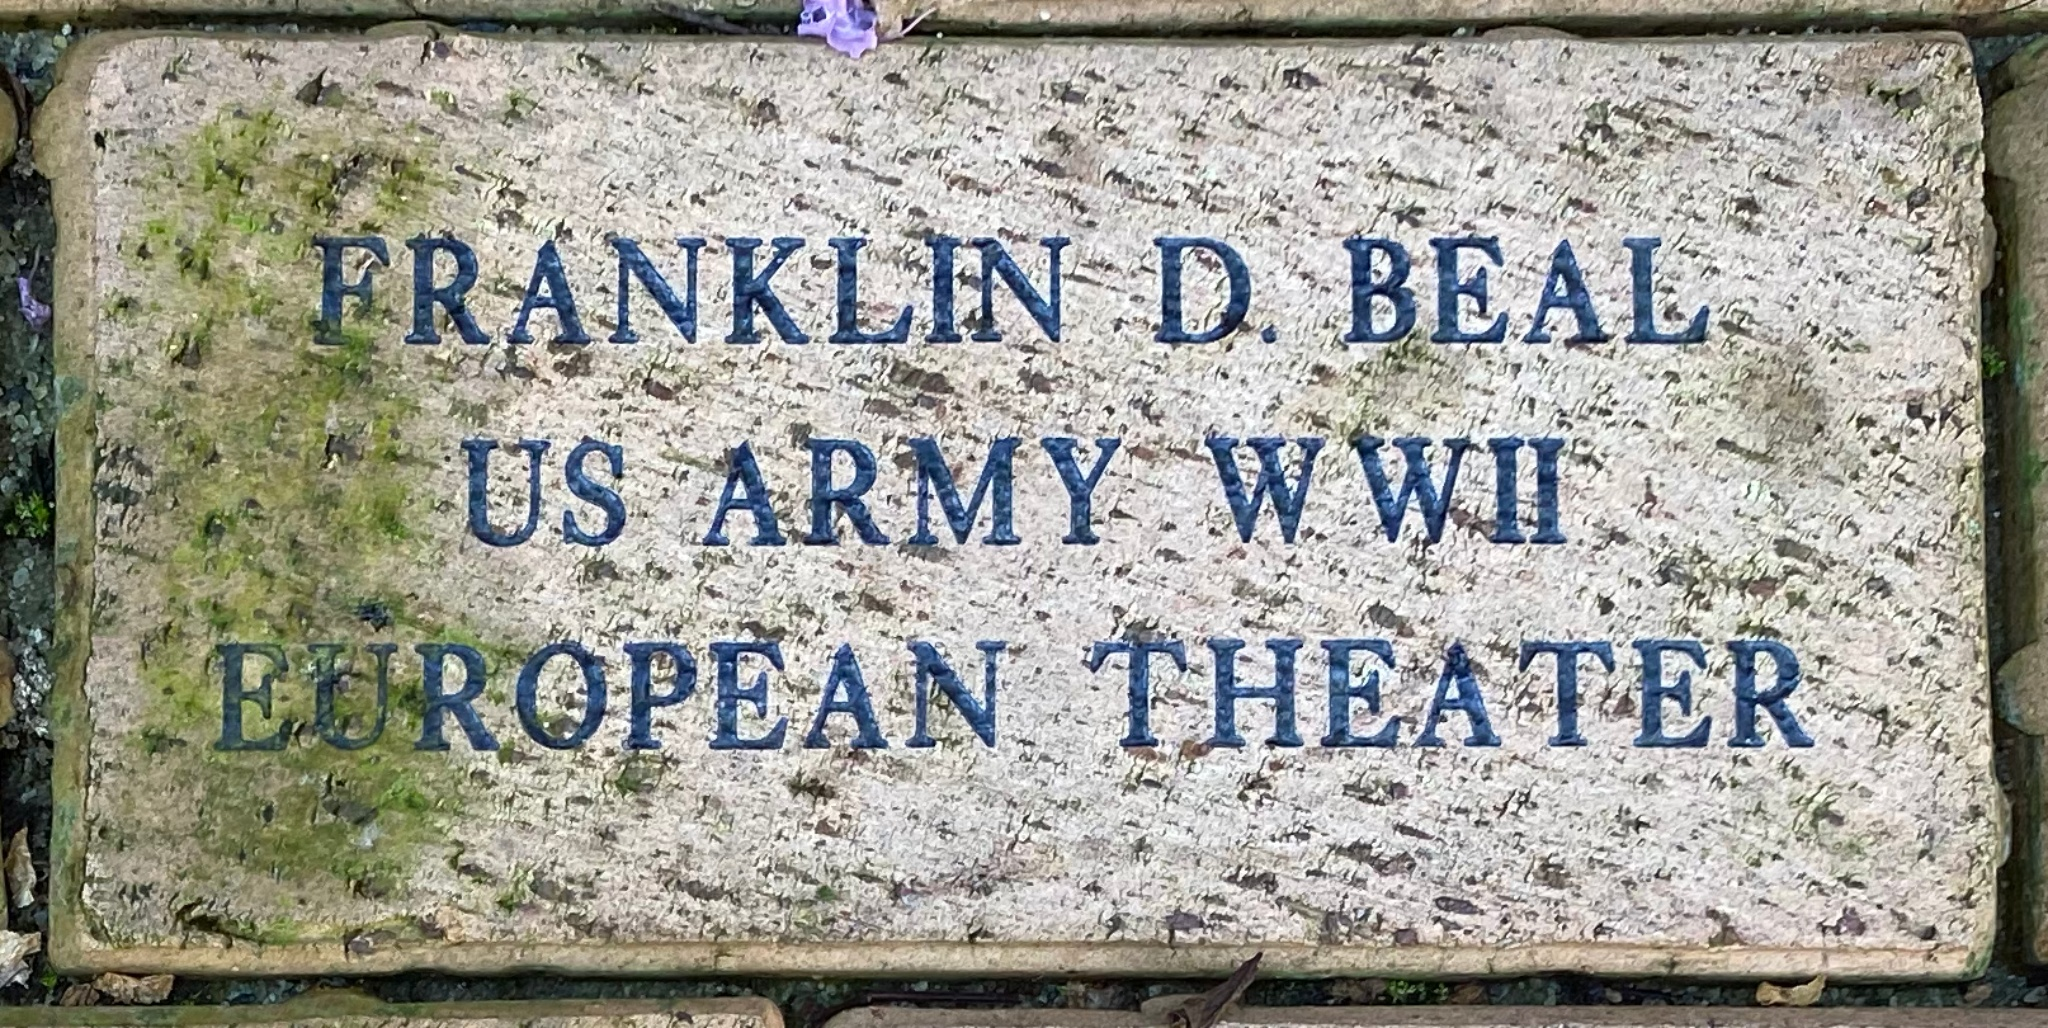 FRANKLIN D. BEAL US ARMY WWII EUROPEAN THEATER